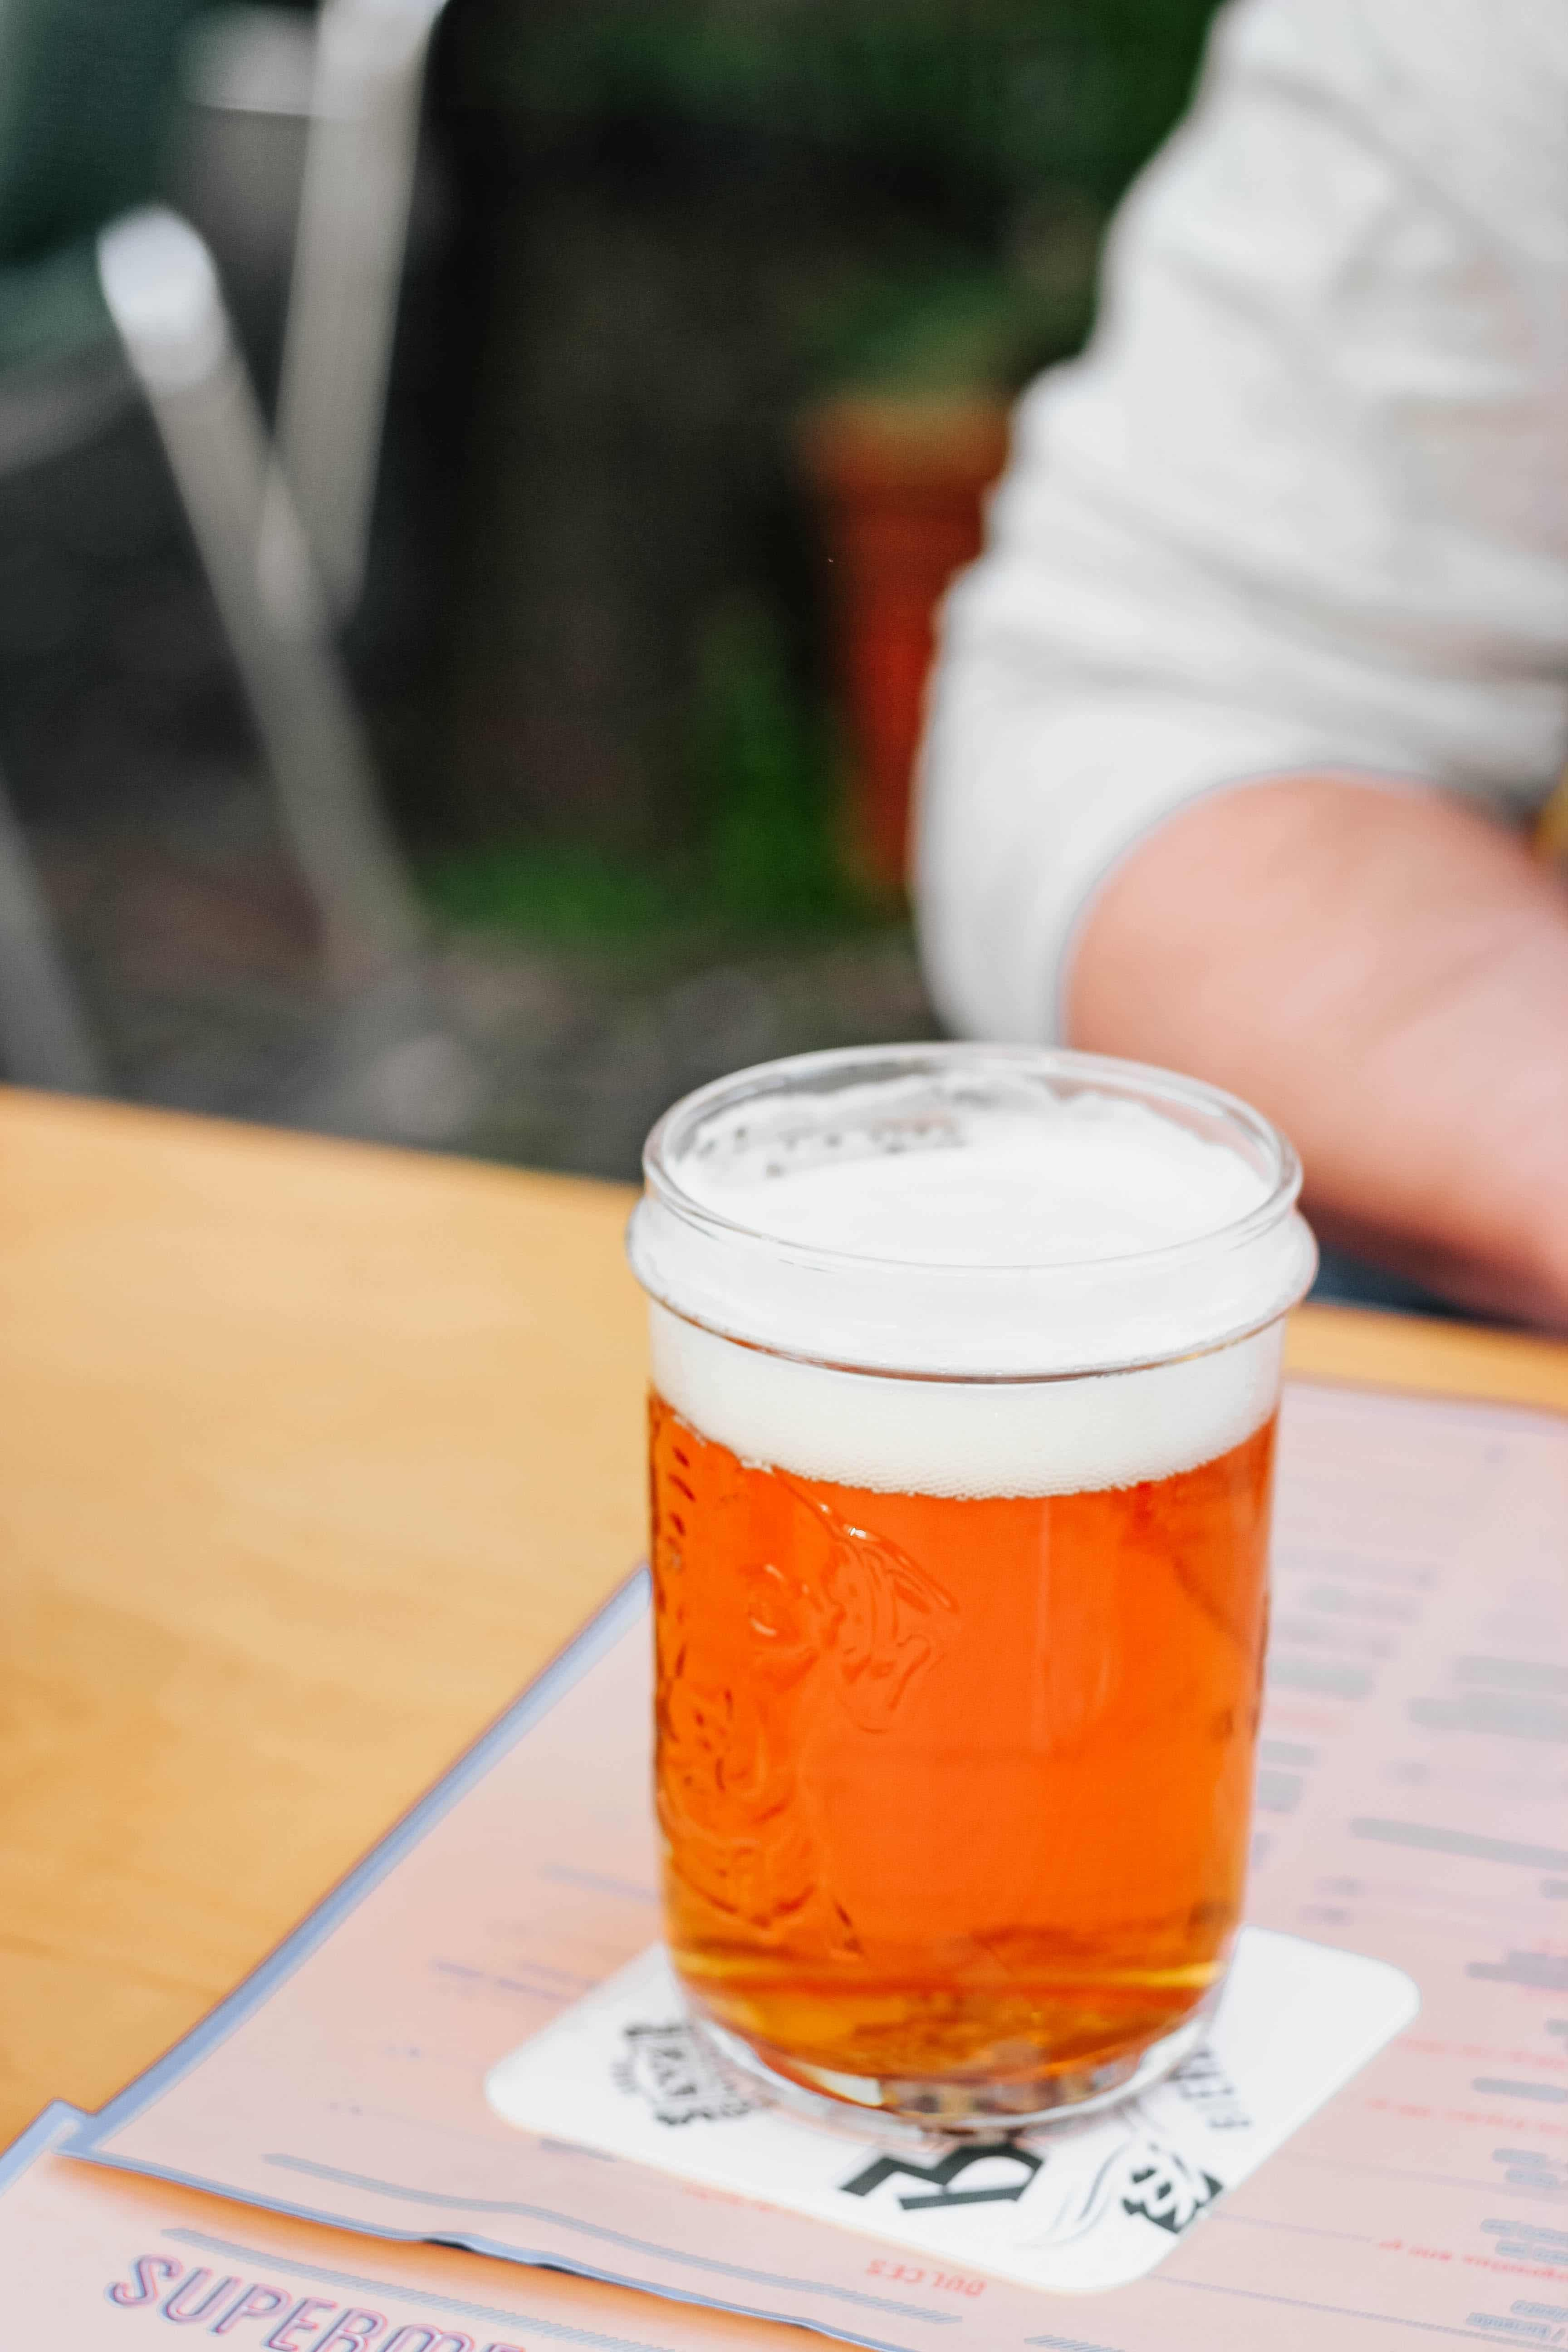 Glass of beer on a table. Photo by Micheile Henderson on Unsplash.